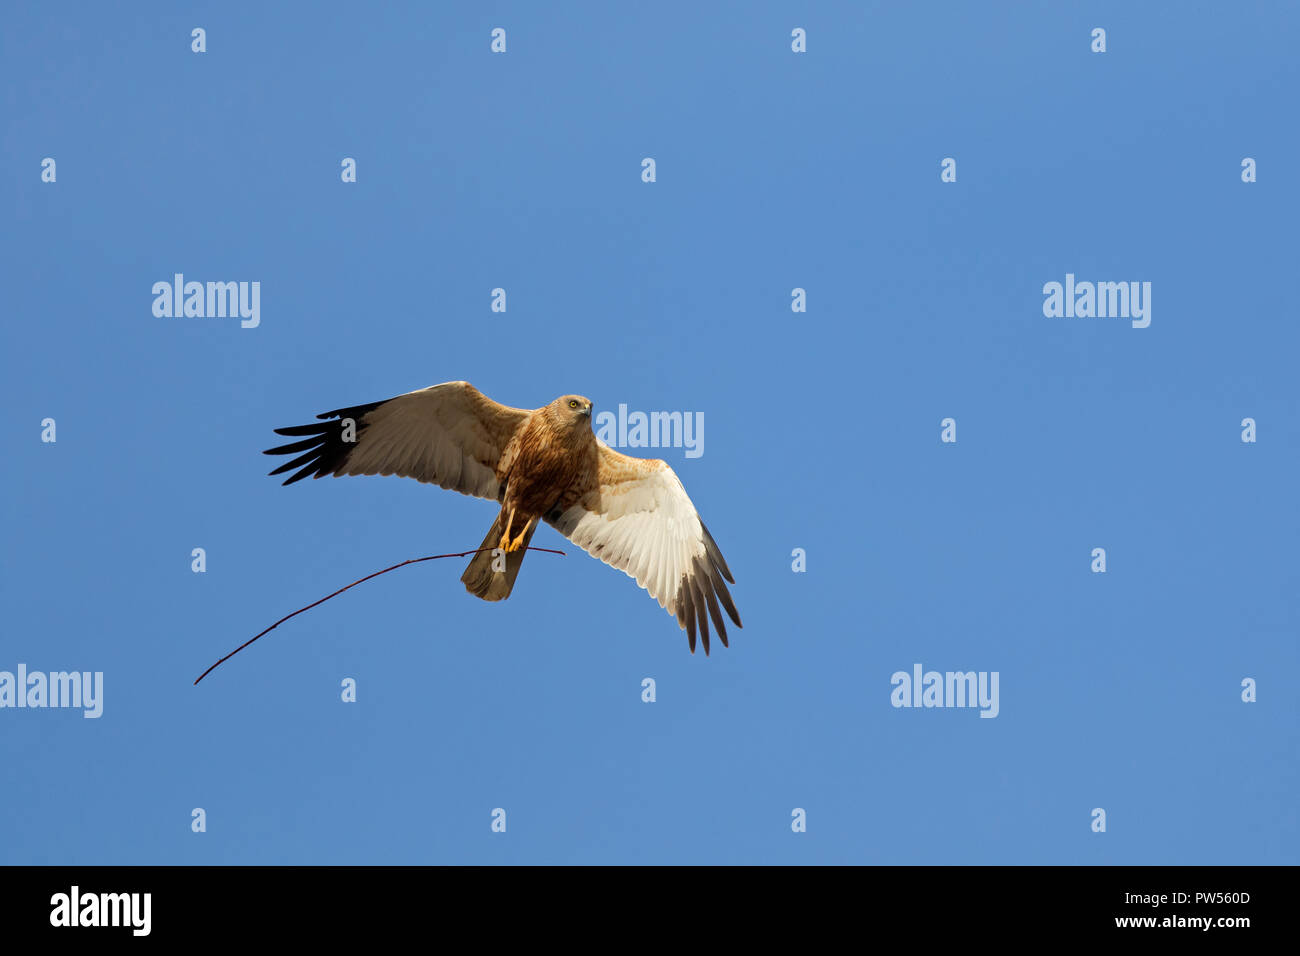 Western marsh harrier / Eurasian marsh harrier (Circus aeruginosus) male in flight with twig in talons for building nest in spring - Stock Image